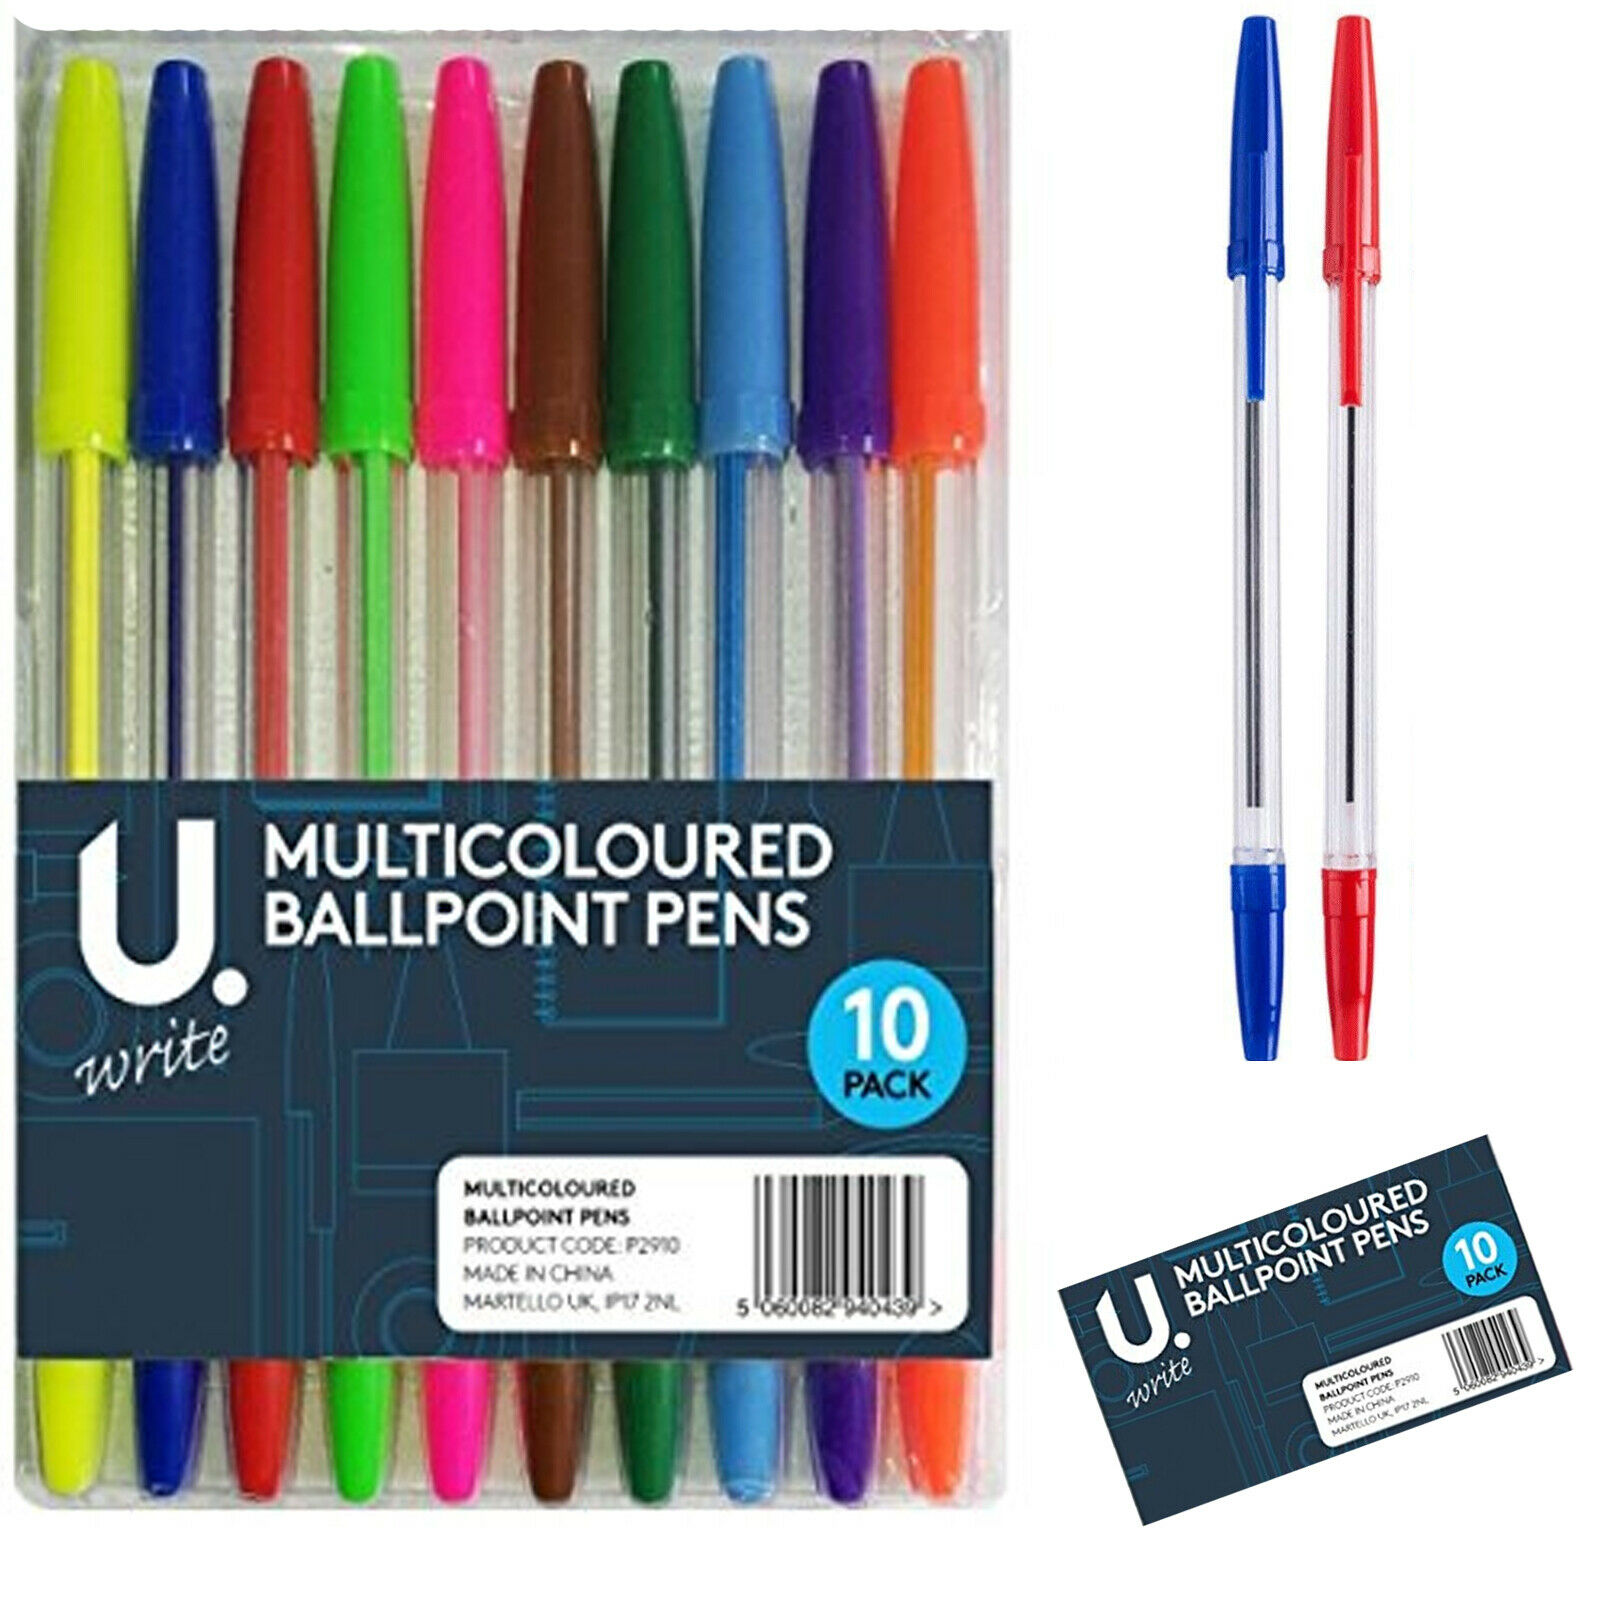 Ballpoint Colour Stationery Pack of 10 Multicoloured Ball Pens